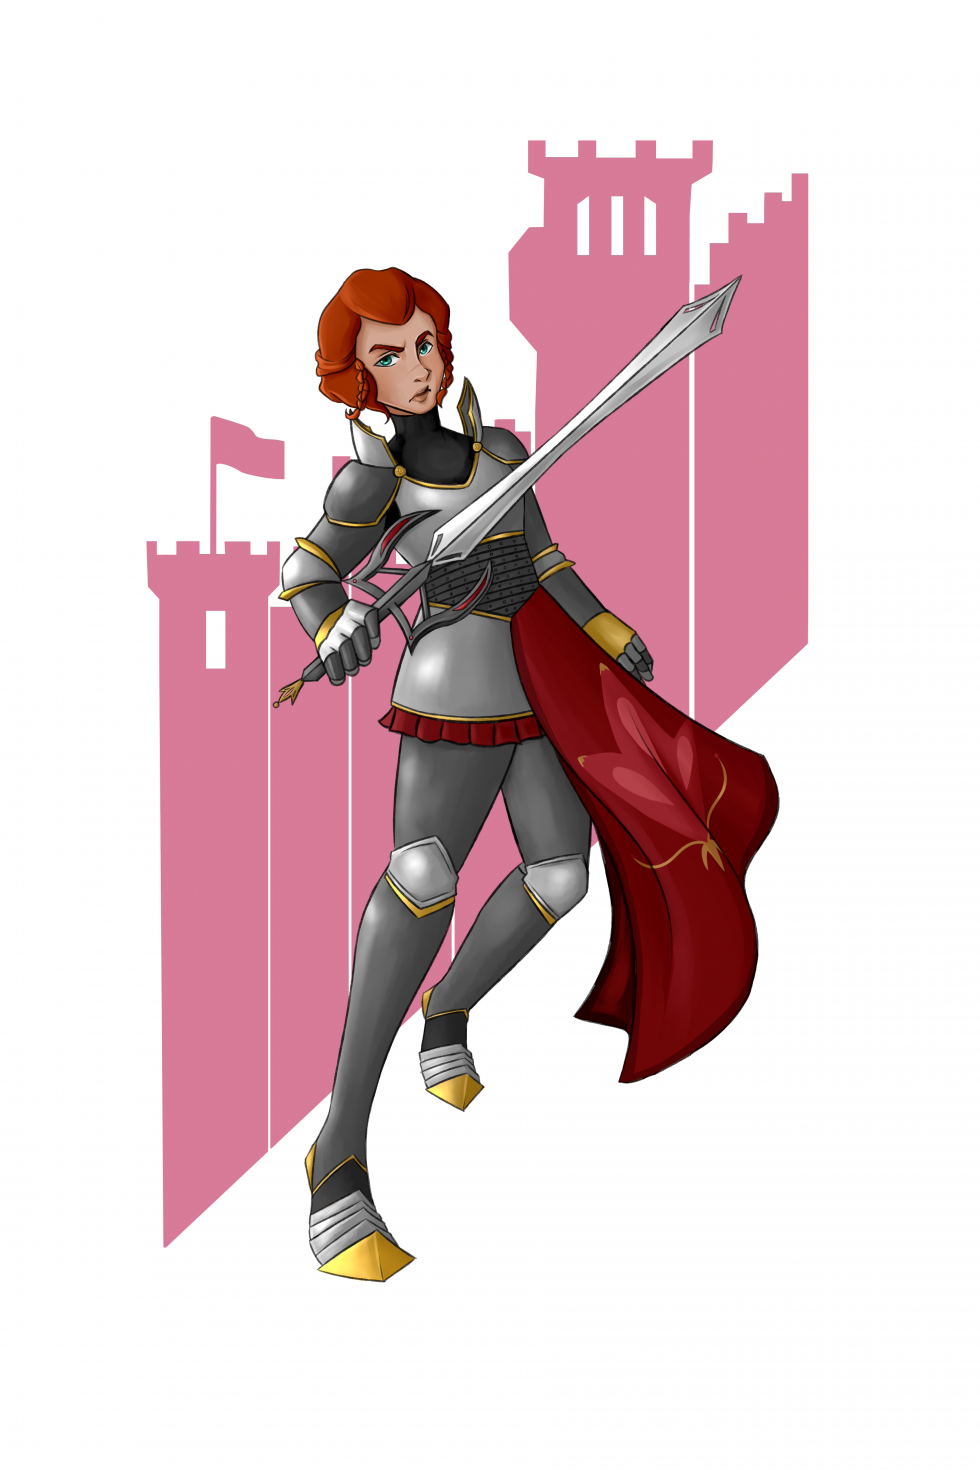 Girl in armor holding a sword on a red background image of a castle